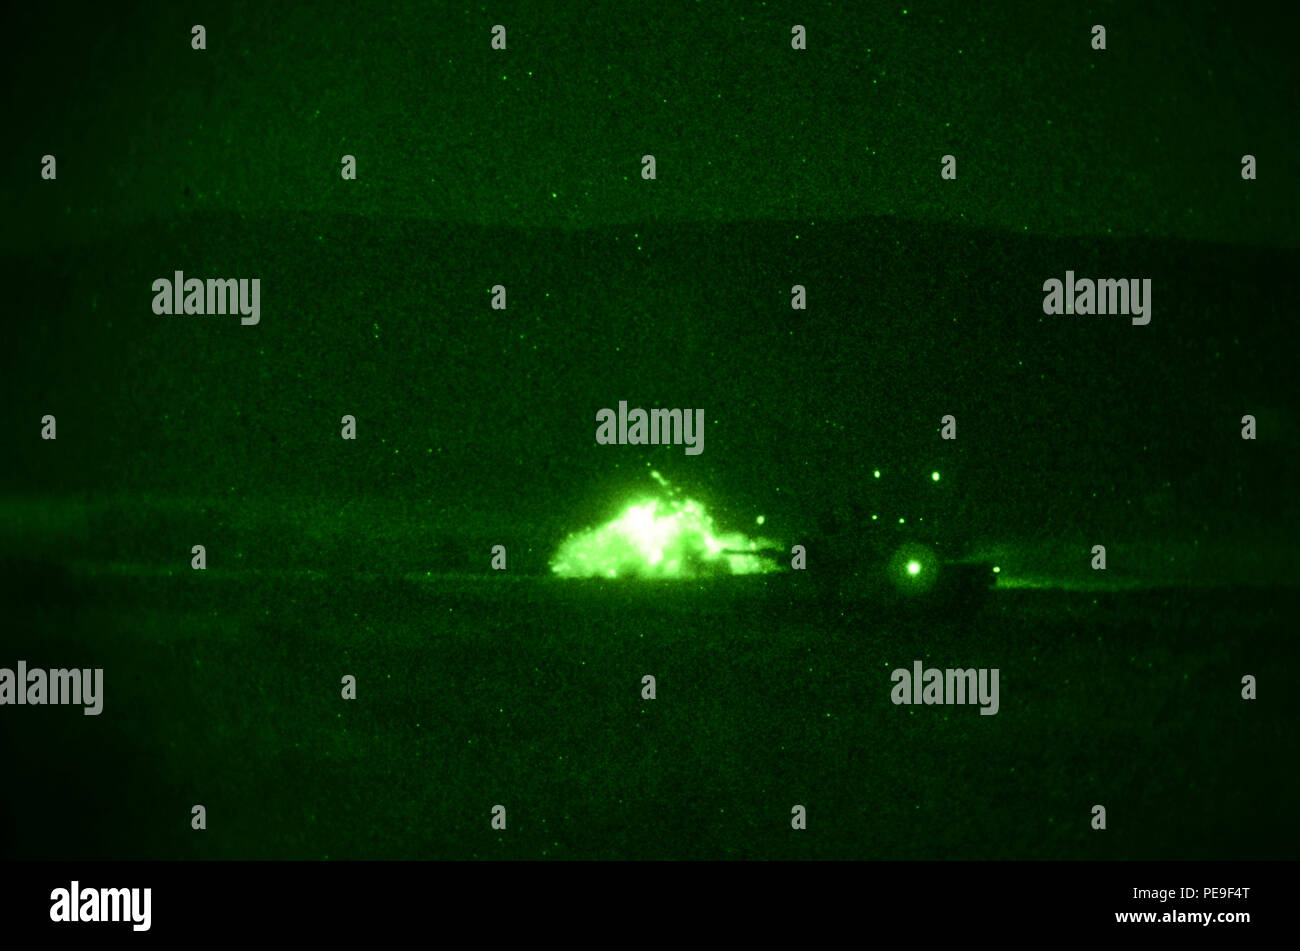 Soldiers of 1st Armored Brigade Combat Team, attached to 5th Squadron, 7th Cavalry Regiment, 3rd Infantry Division, stationed at Fort Stewart, Ga., fire a round out of an M1A2 System Enhancement Package Version 2 Abram Tank at enemy targets during a night operations field training exercise in support of Operation Atlantic Resolve at Novo Selo Training Center, Bulgaria, Nov. 17, 2015. (U.S. Army photo by Staff Sgt. Steven M. Colvin/Released) - Stock Image